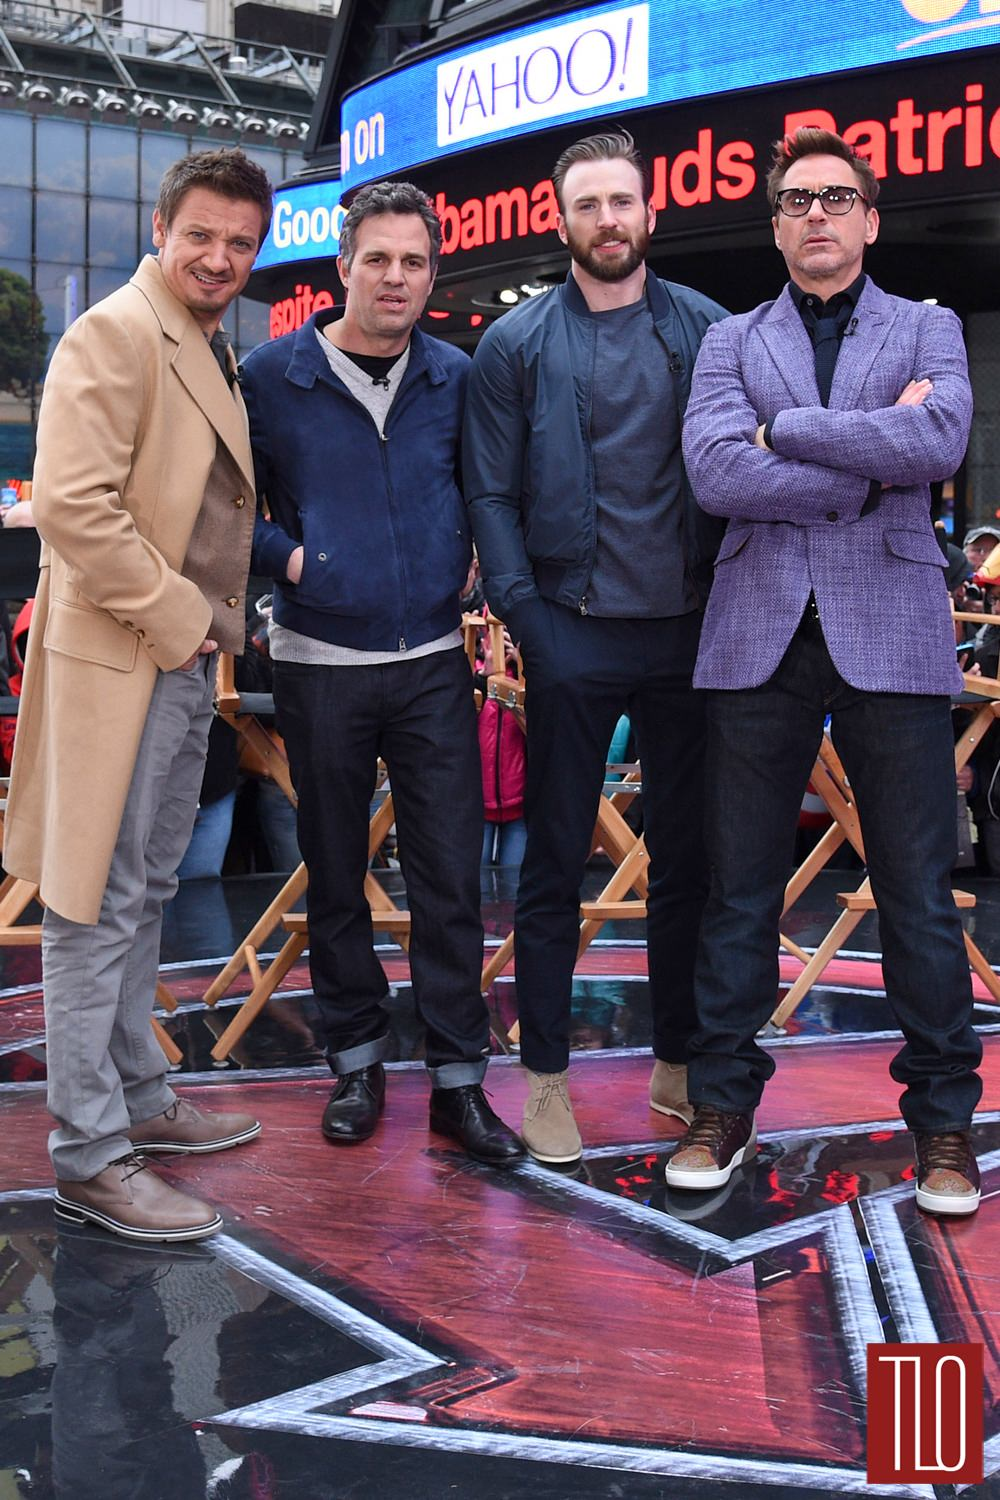 Jeremy-Renner-Mark-Rufallo-Chris-Evans-Robert-Downey-Jr-Avengers-Age-Ultron-Good-Morning-America-Tom-Lorenzo-Site-TLO (1)